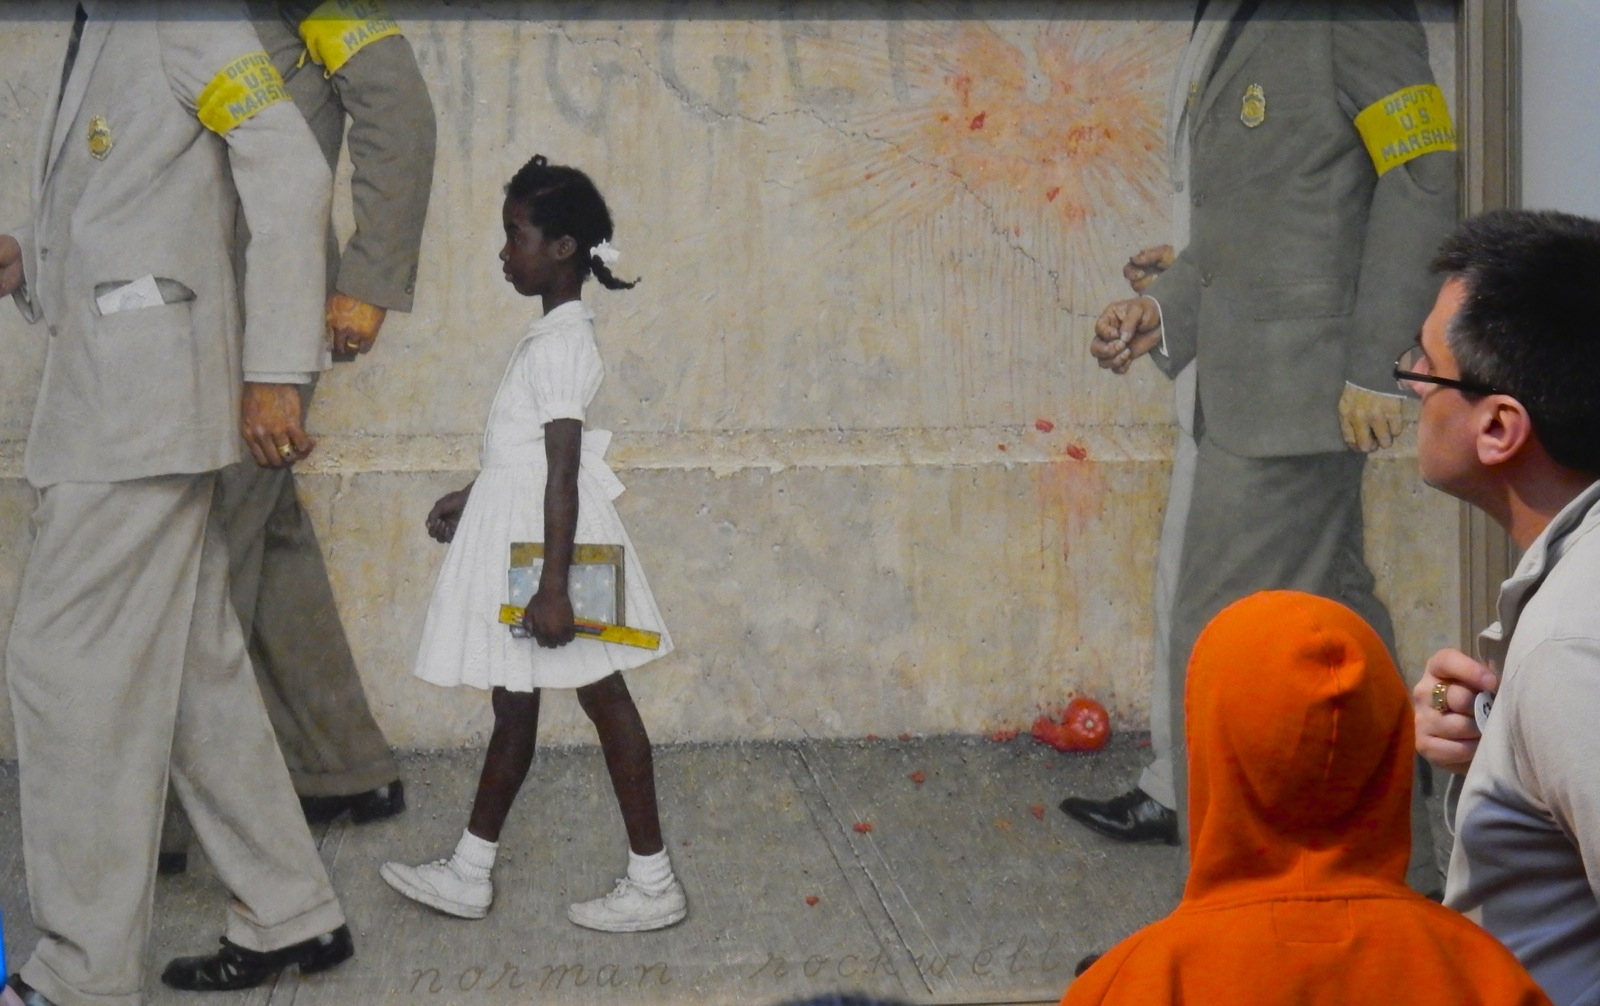 Ruby Bridges Goes to School Norman Rockwell painting at Norman Rockwell Museum Stockbridge MA